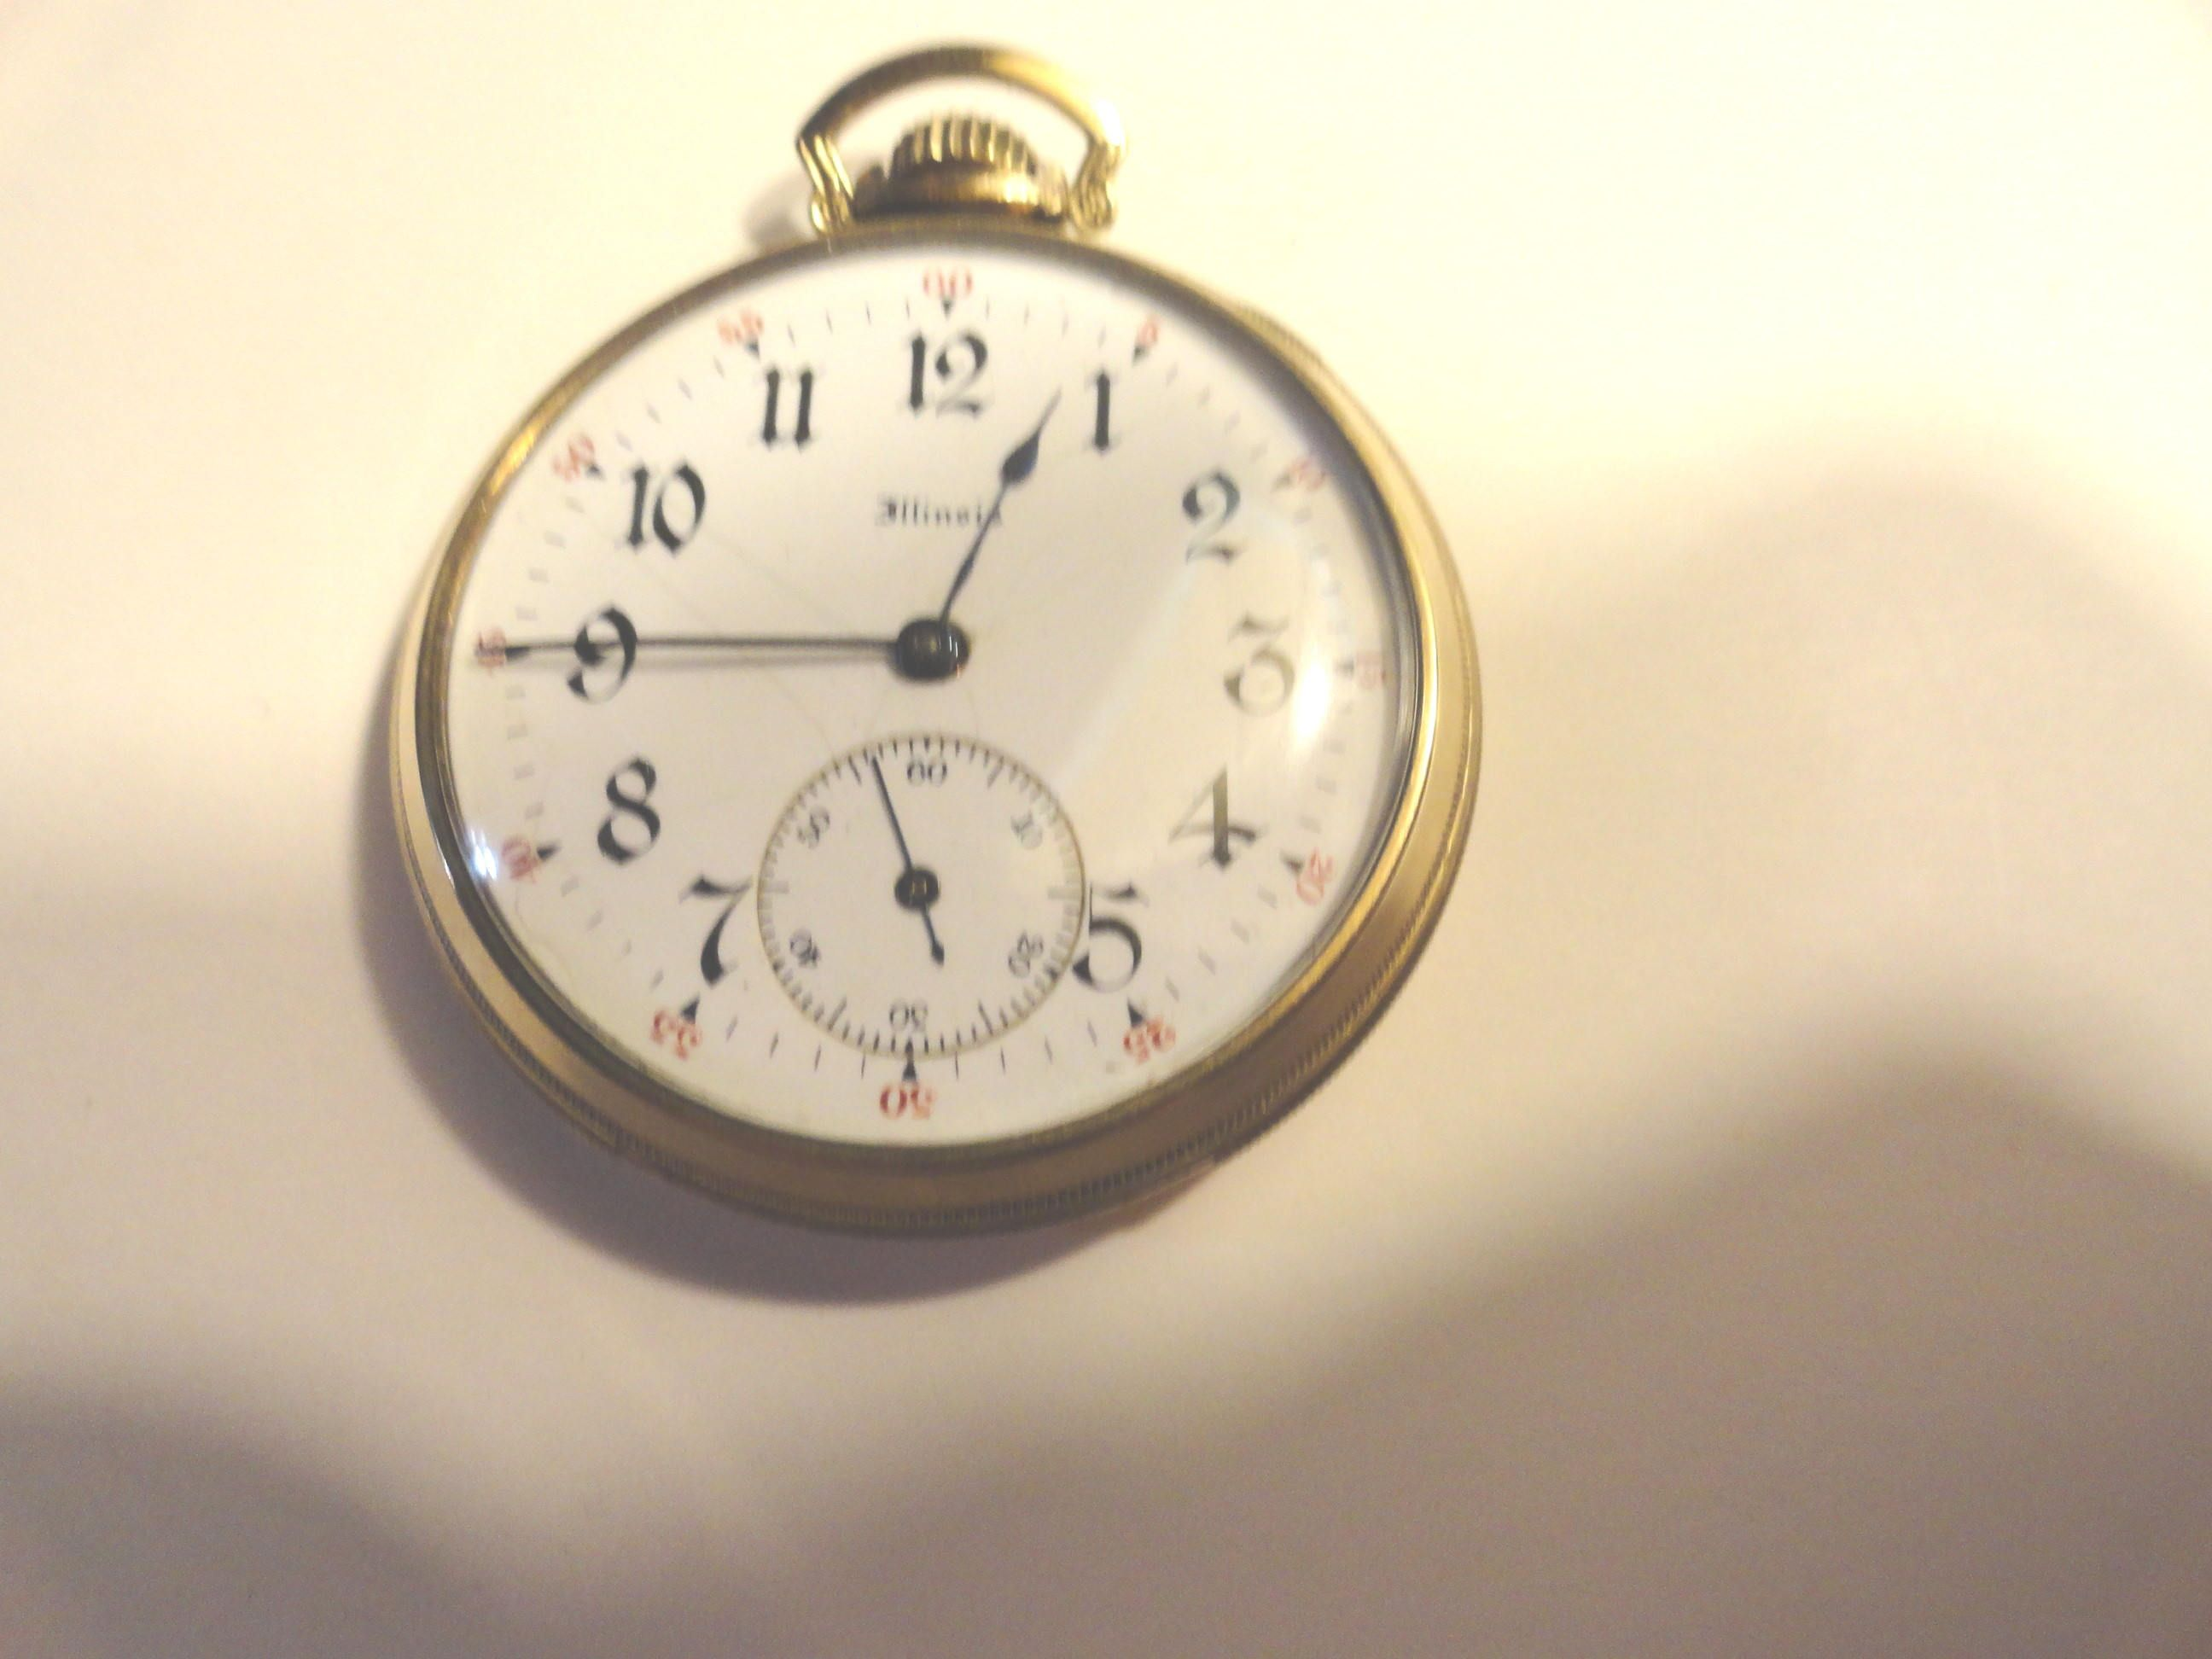 1904 Illinois Gold Filled Open Face Pocket Watch 10 Size